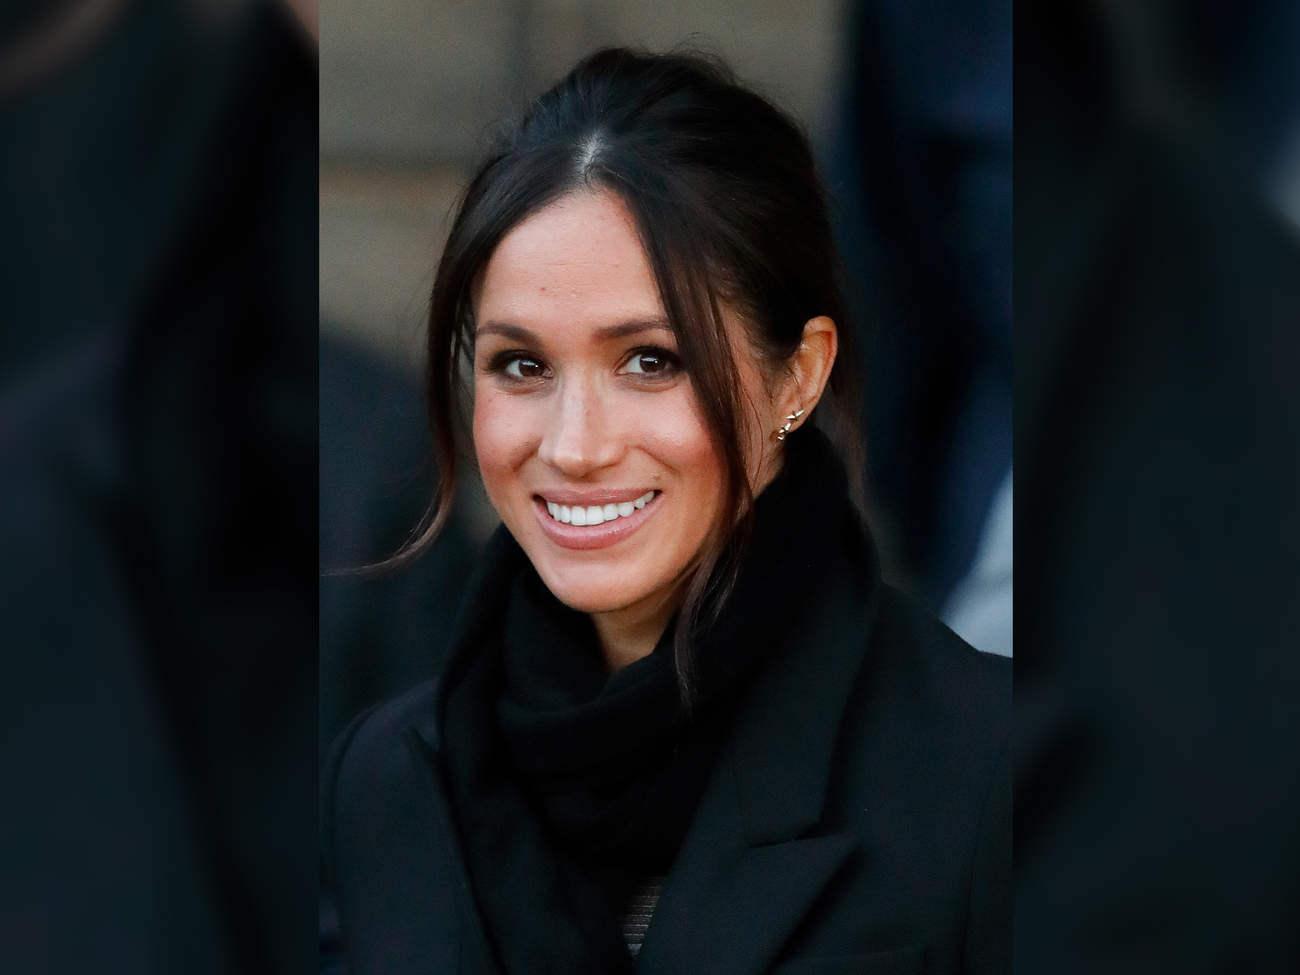 meghan markle has a gold necklace and its her favorite